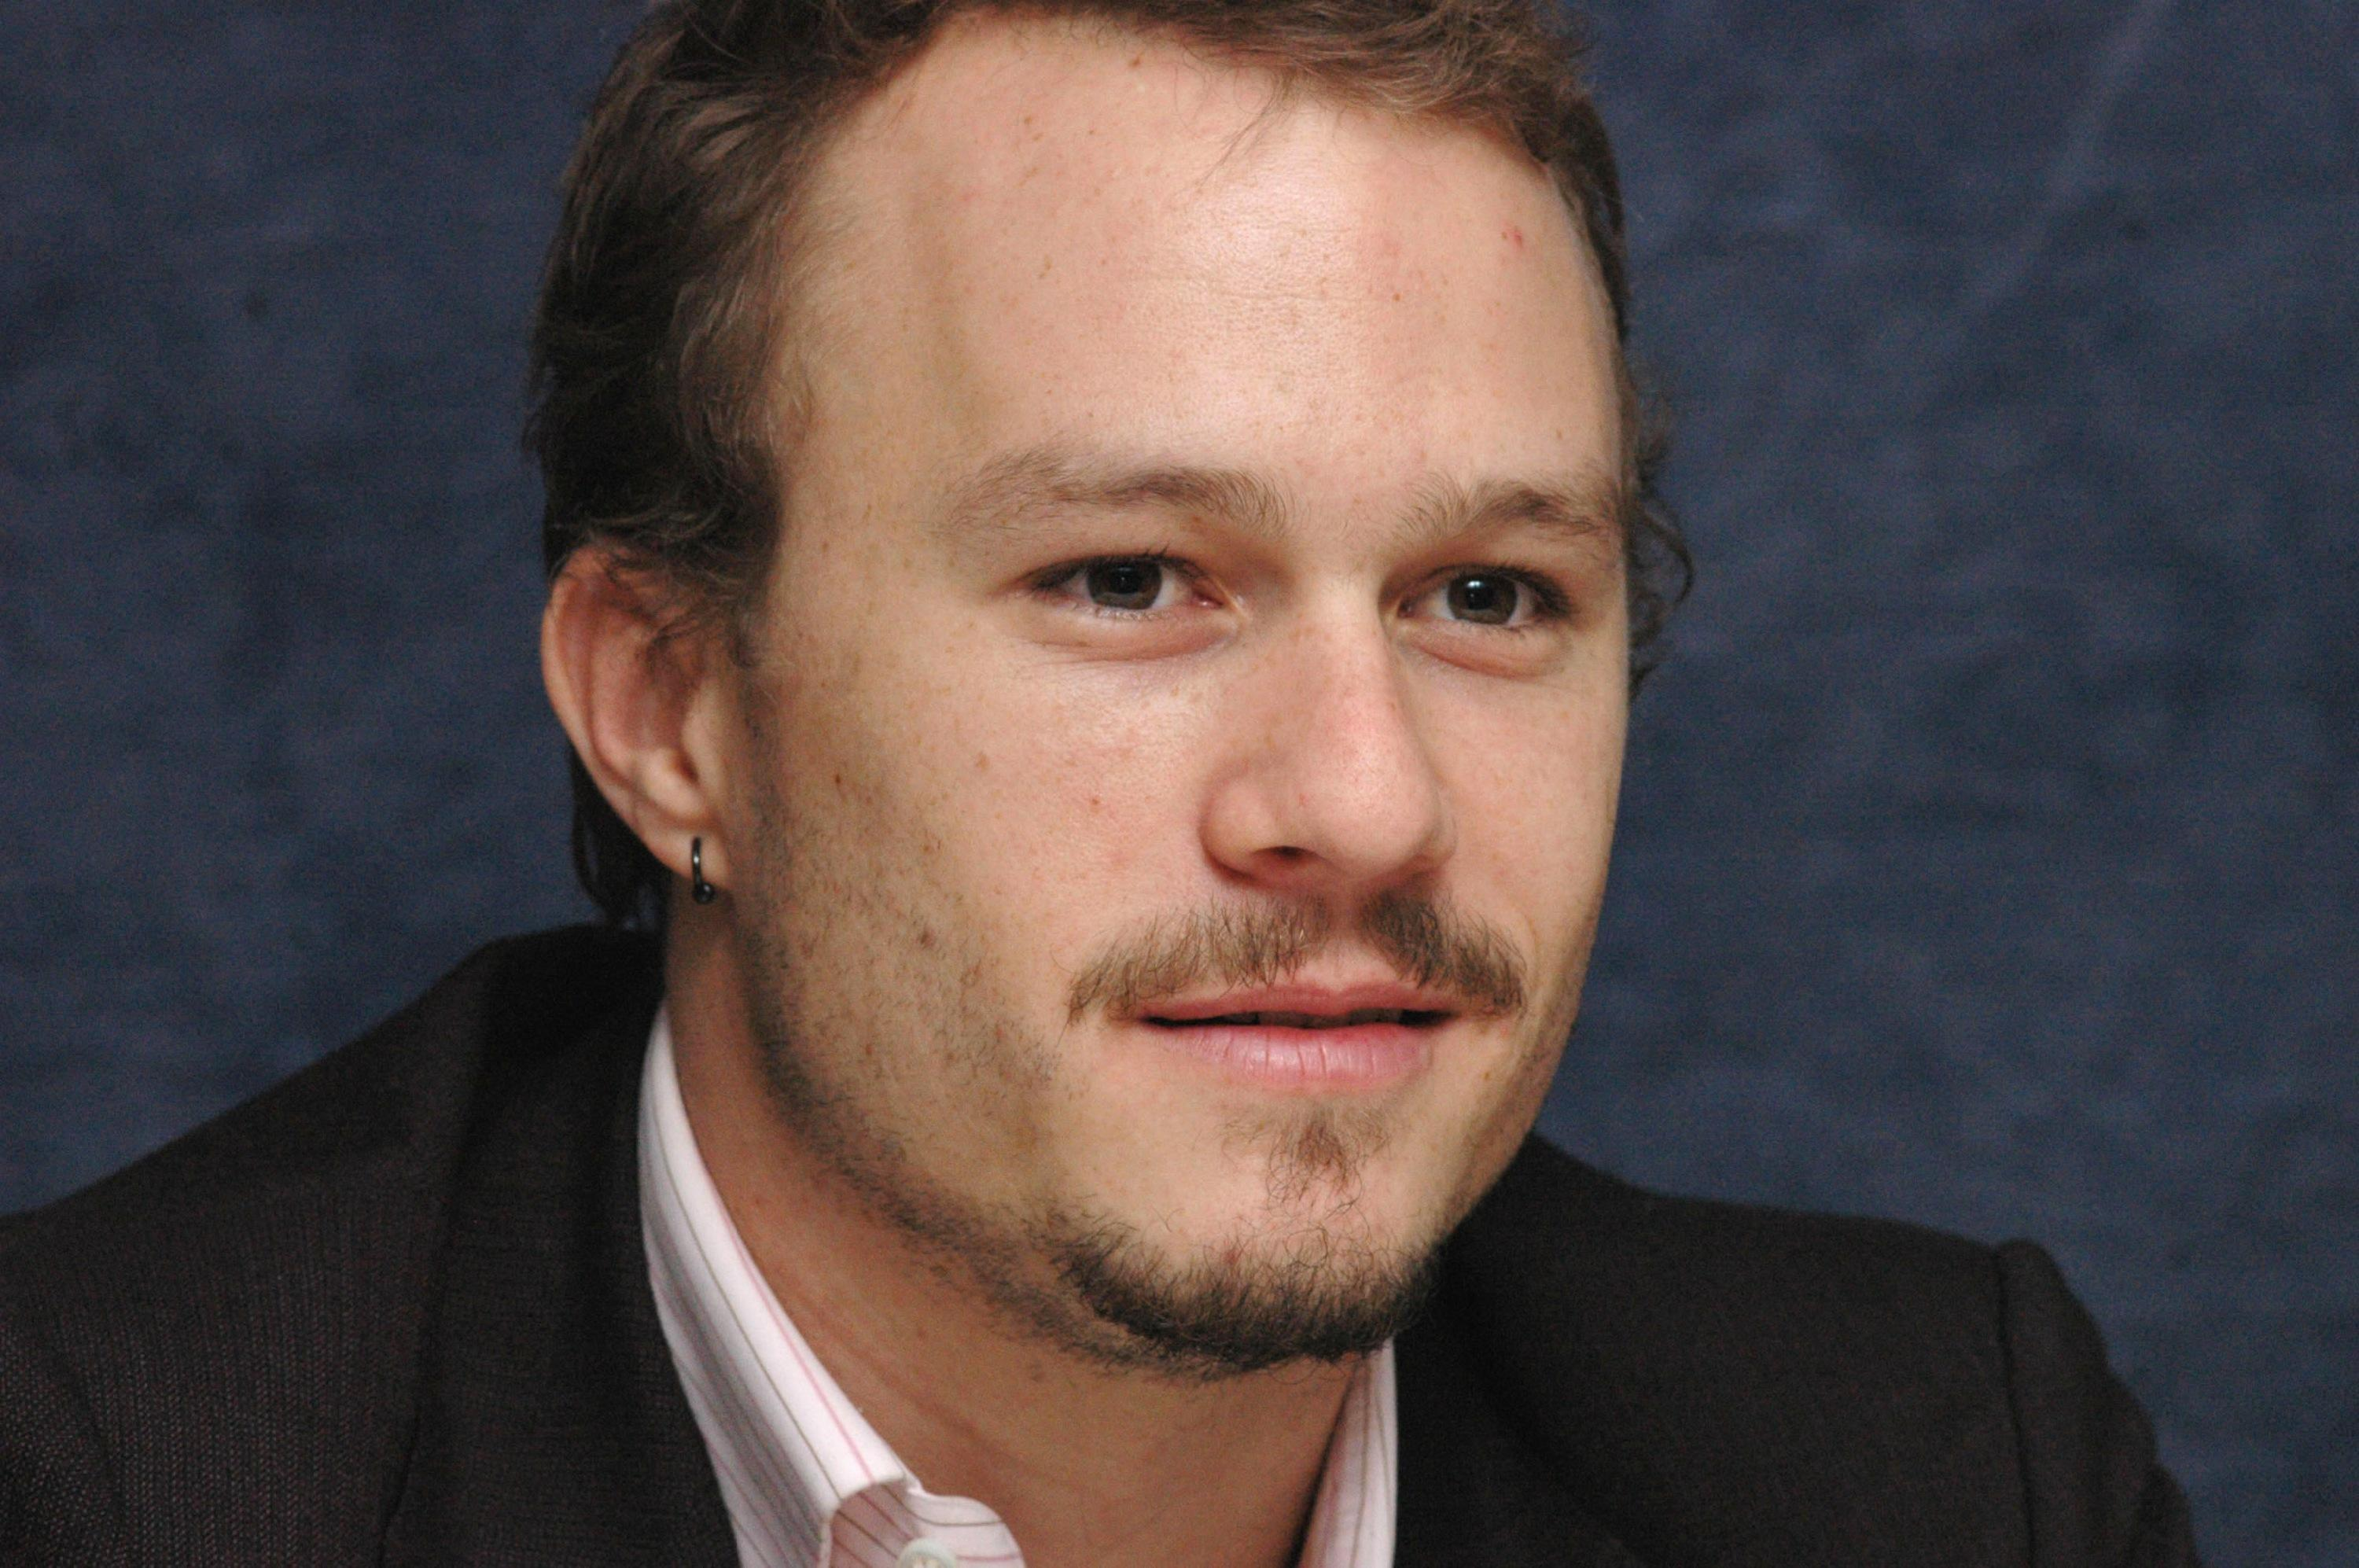 Heath Ledger, remembered for one of the most chilling takes on the Joker, died at 28 from an accidental prescription drug overdose. (Photo: WENN)